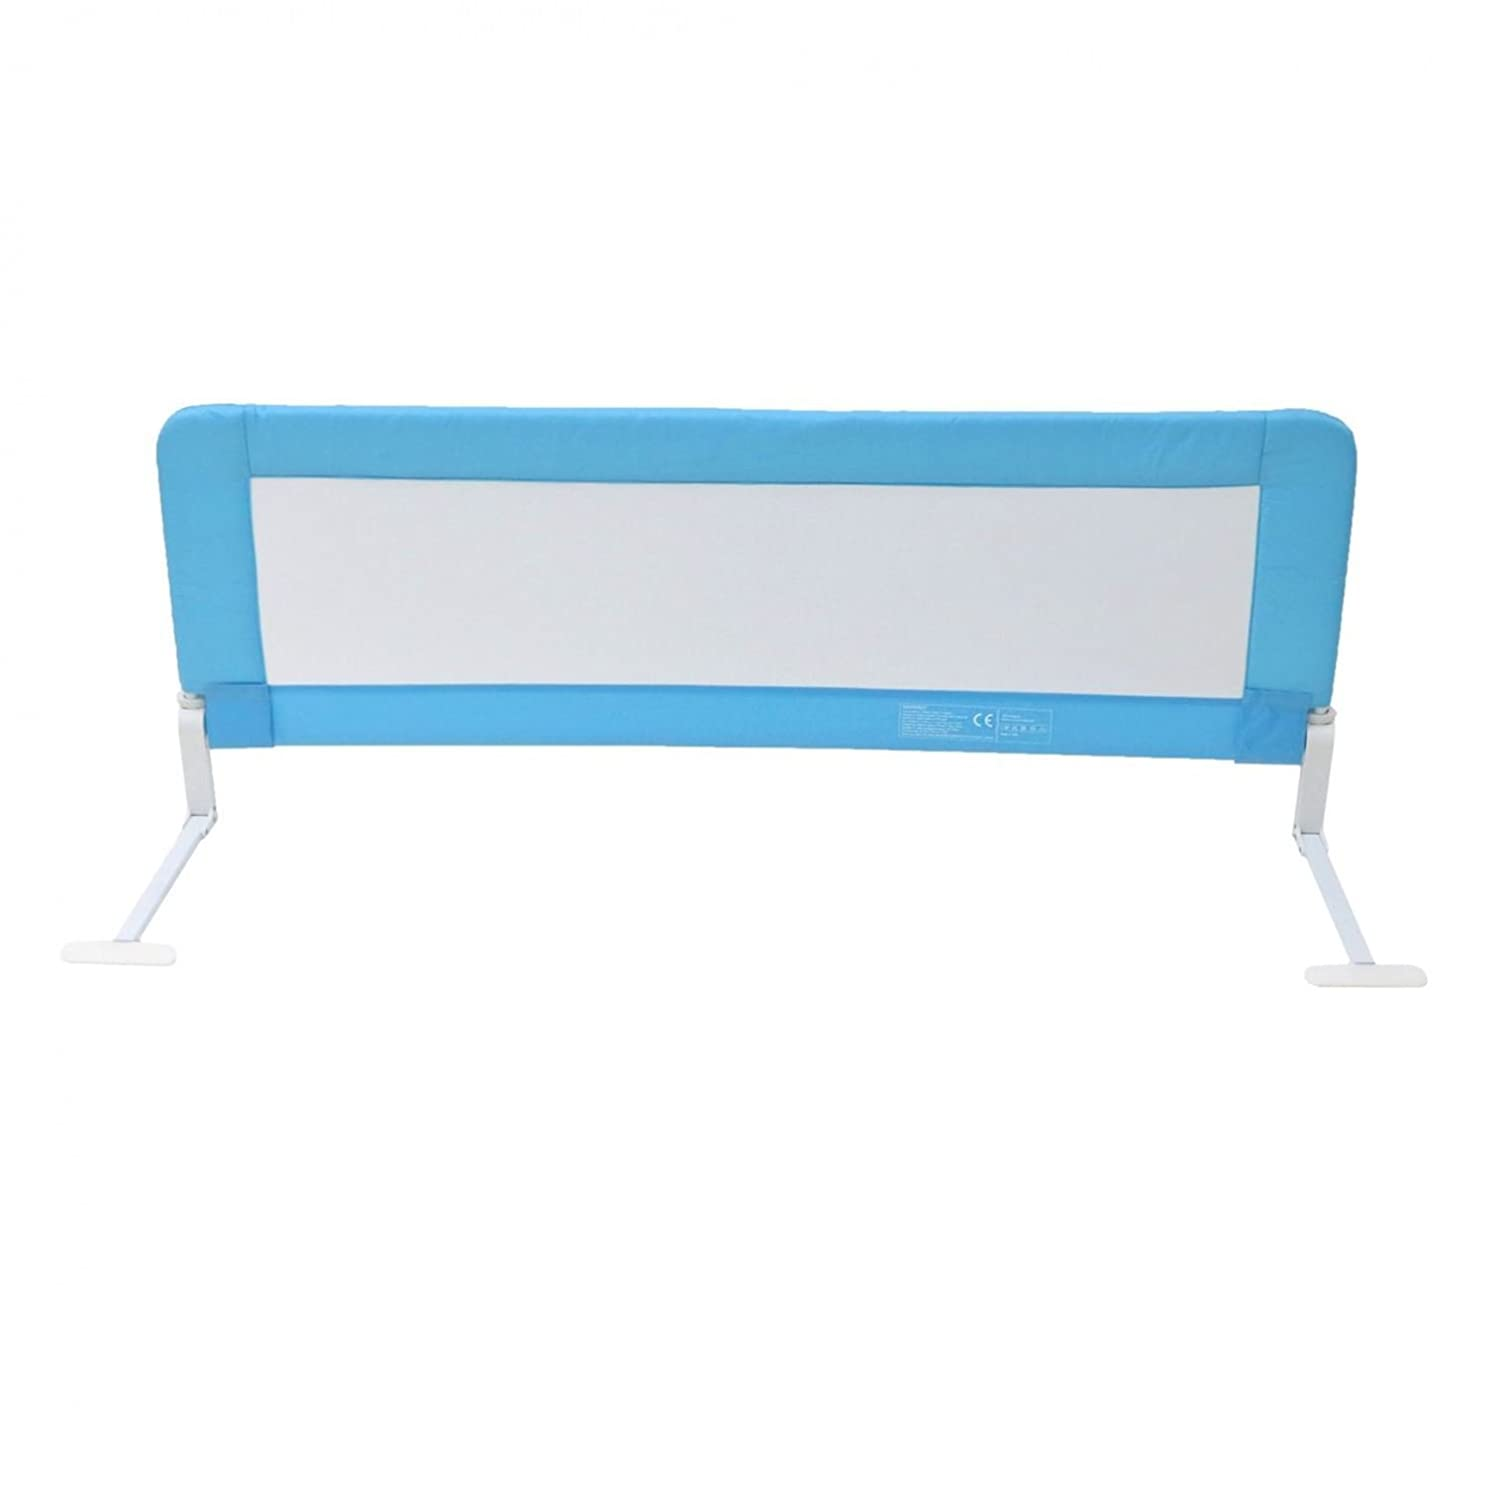 Oypla 150cm Blue Baby Child Toddler Bed Rail Safety Protection Guard